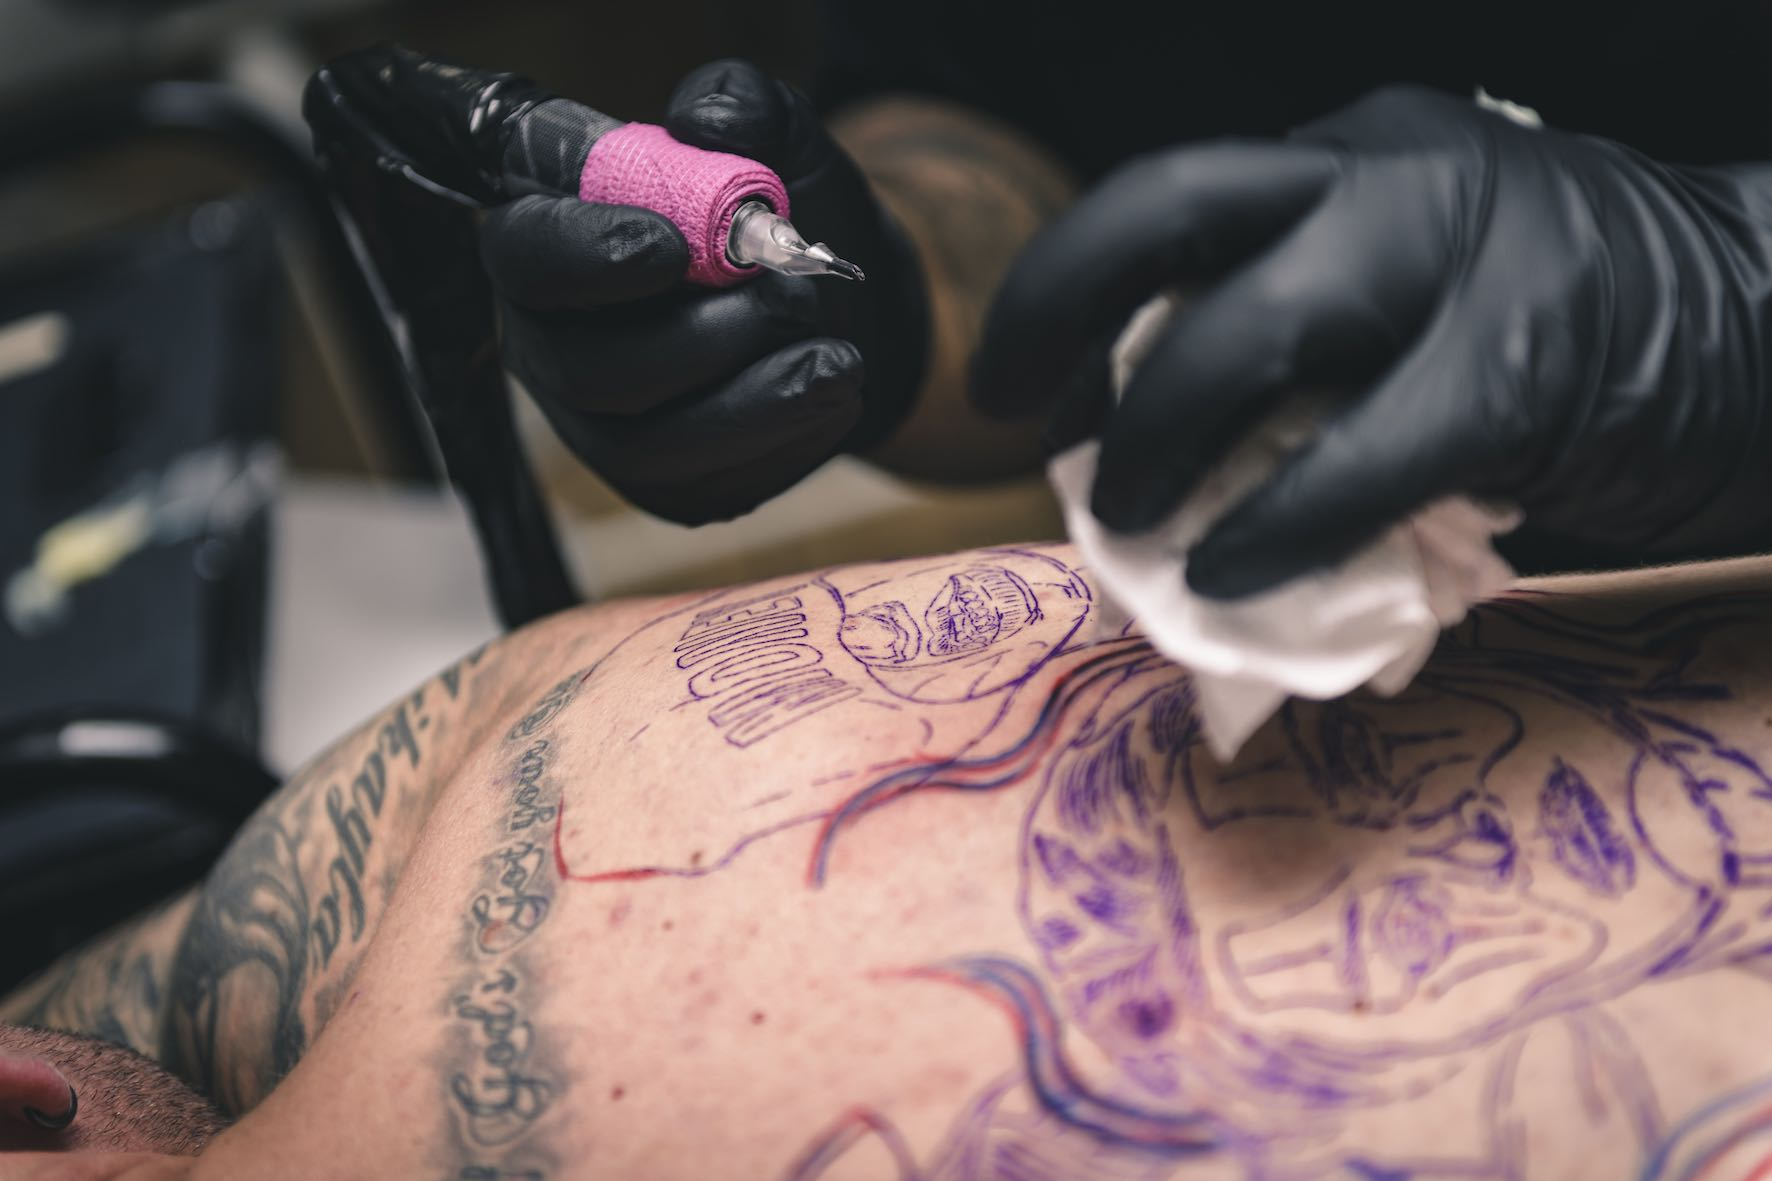 Get to know tattoo artist, Kyle Beyers